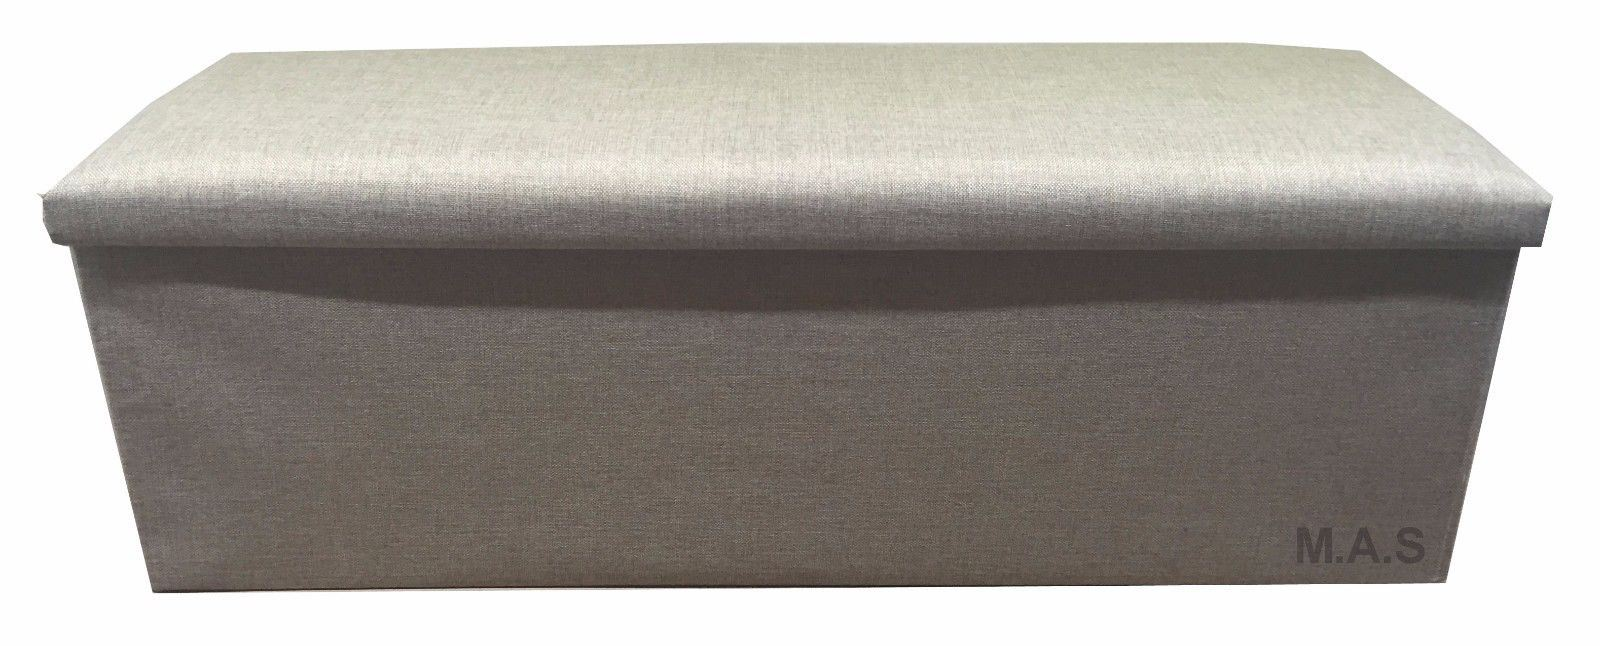 LARGE-3-SEATER-GREY-OR-BEIGE-FAUX-LINEN-  sc 1 st  eBay & LARGE 3 SEATER GREY OR BEIGE FAUX LINEN STORAGE BOX FOOT STOOL SEAT ...